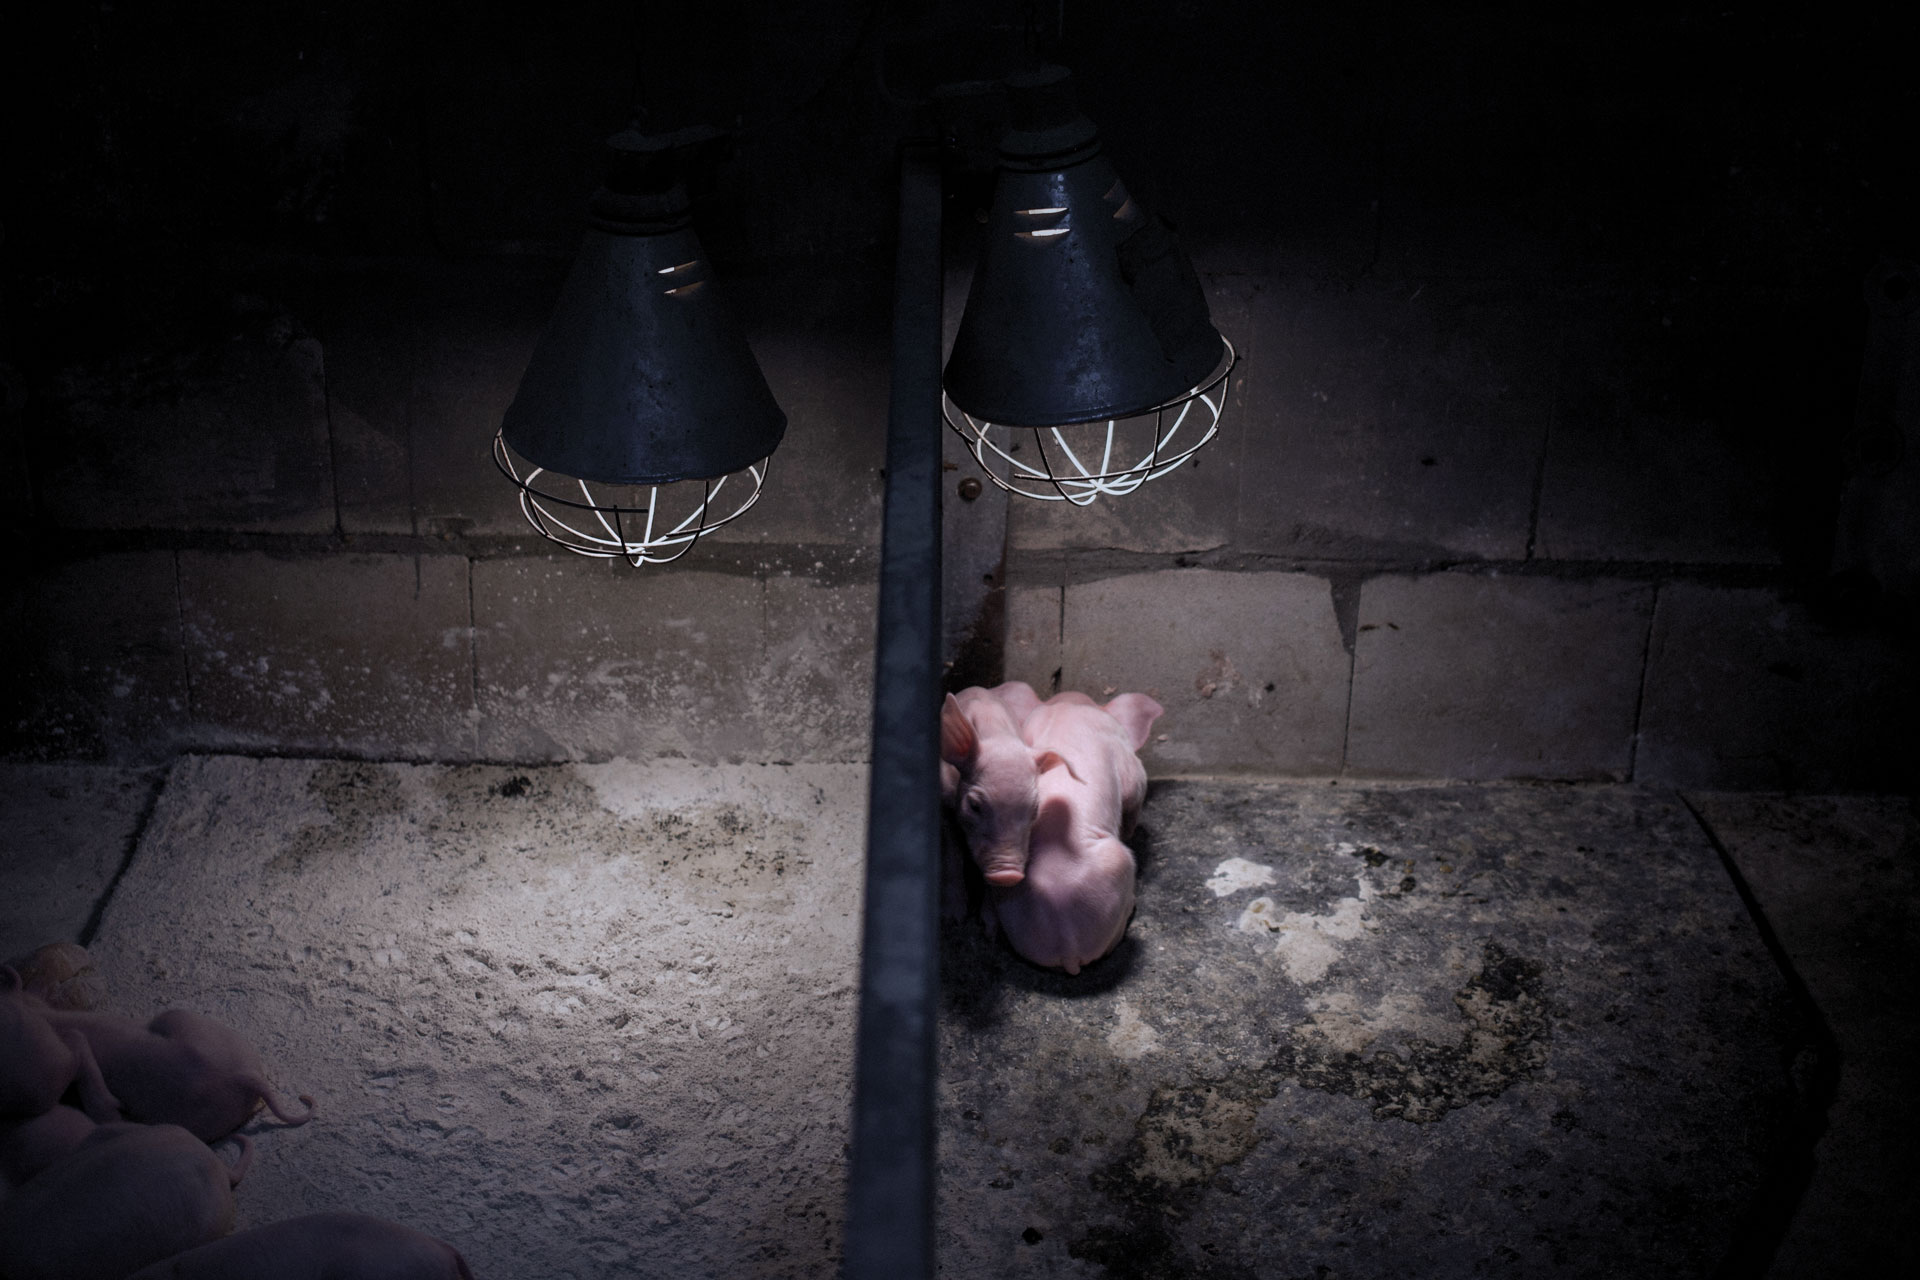 timo-stammberger-massentierhaltung-mastanlage-factory-farming-schweine-pigs-animal-rights_09